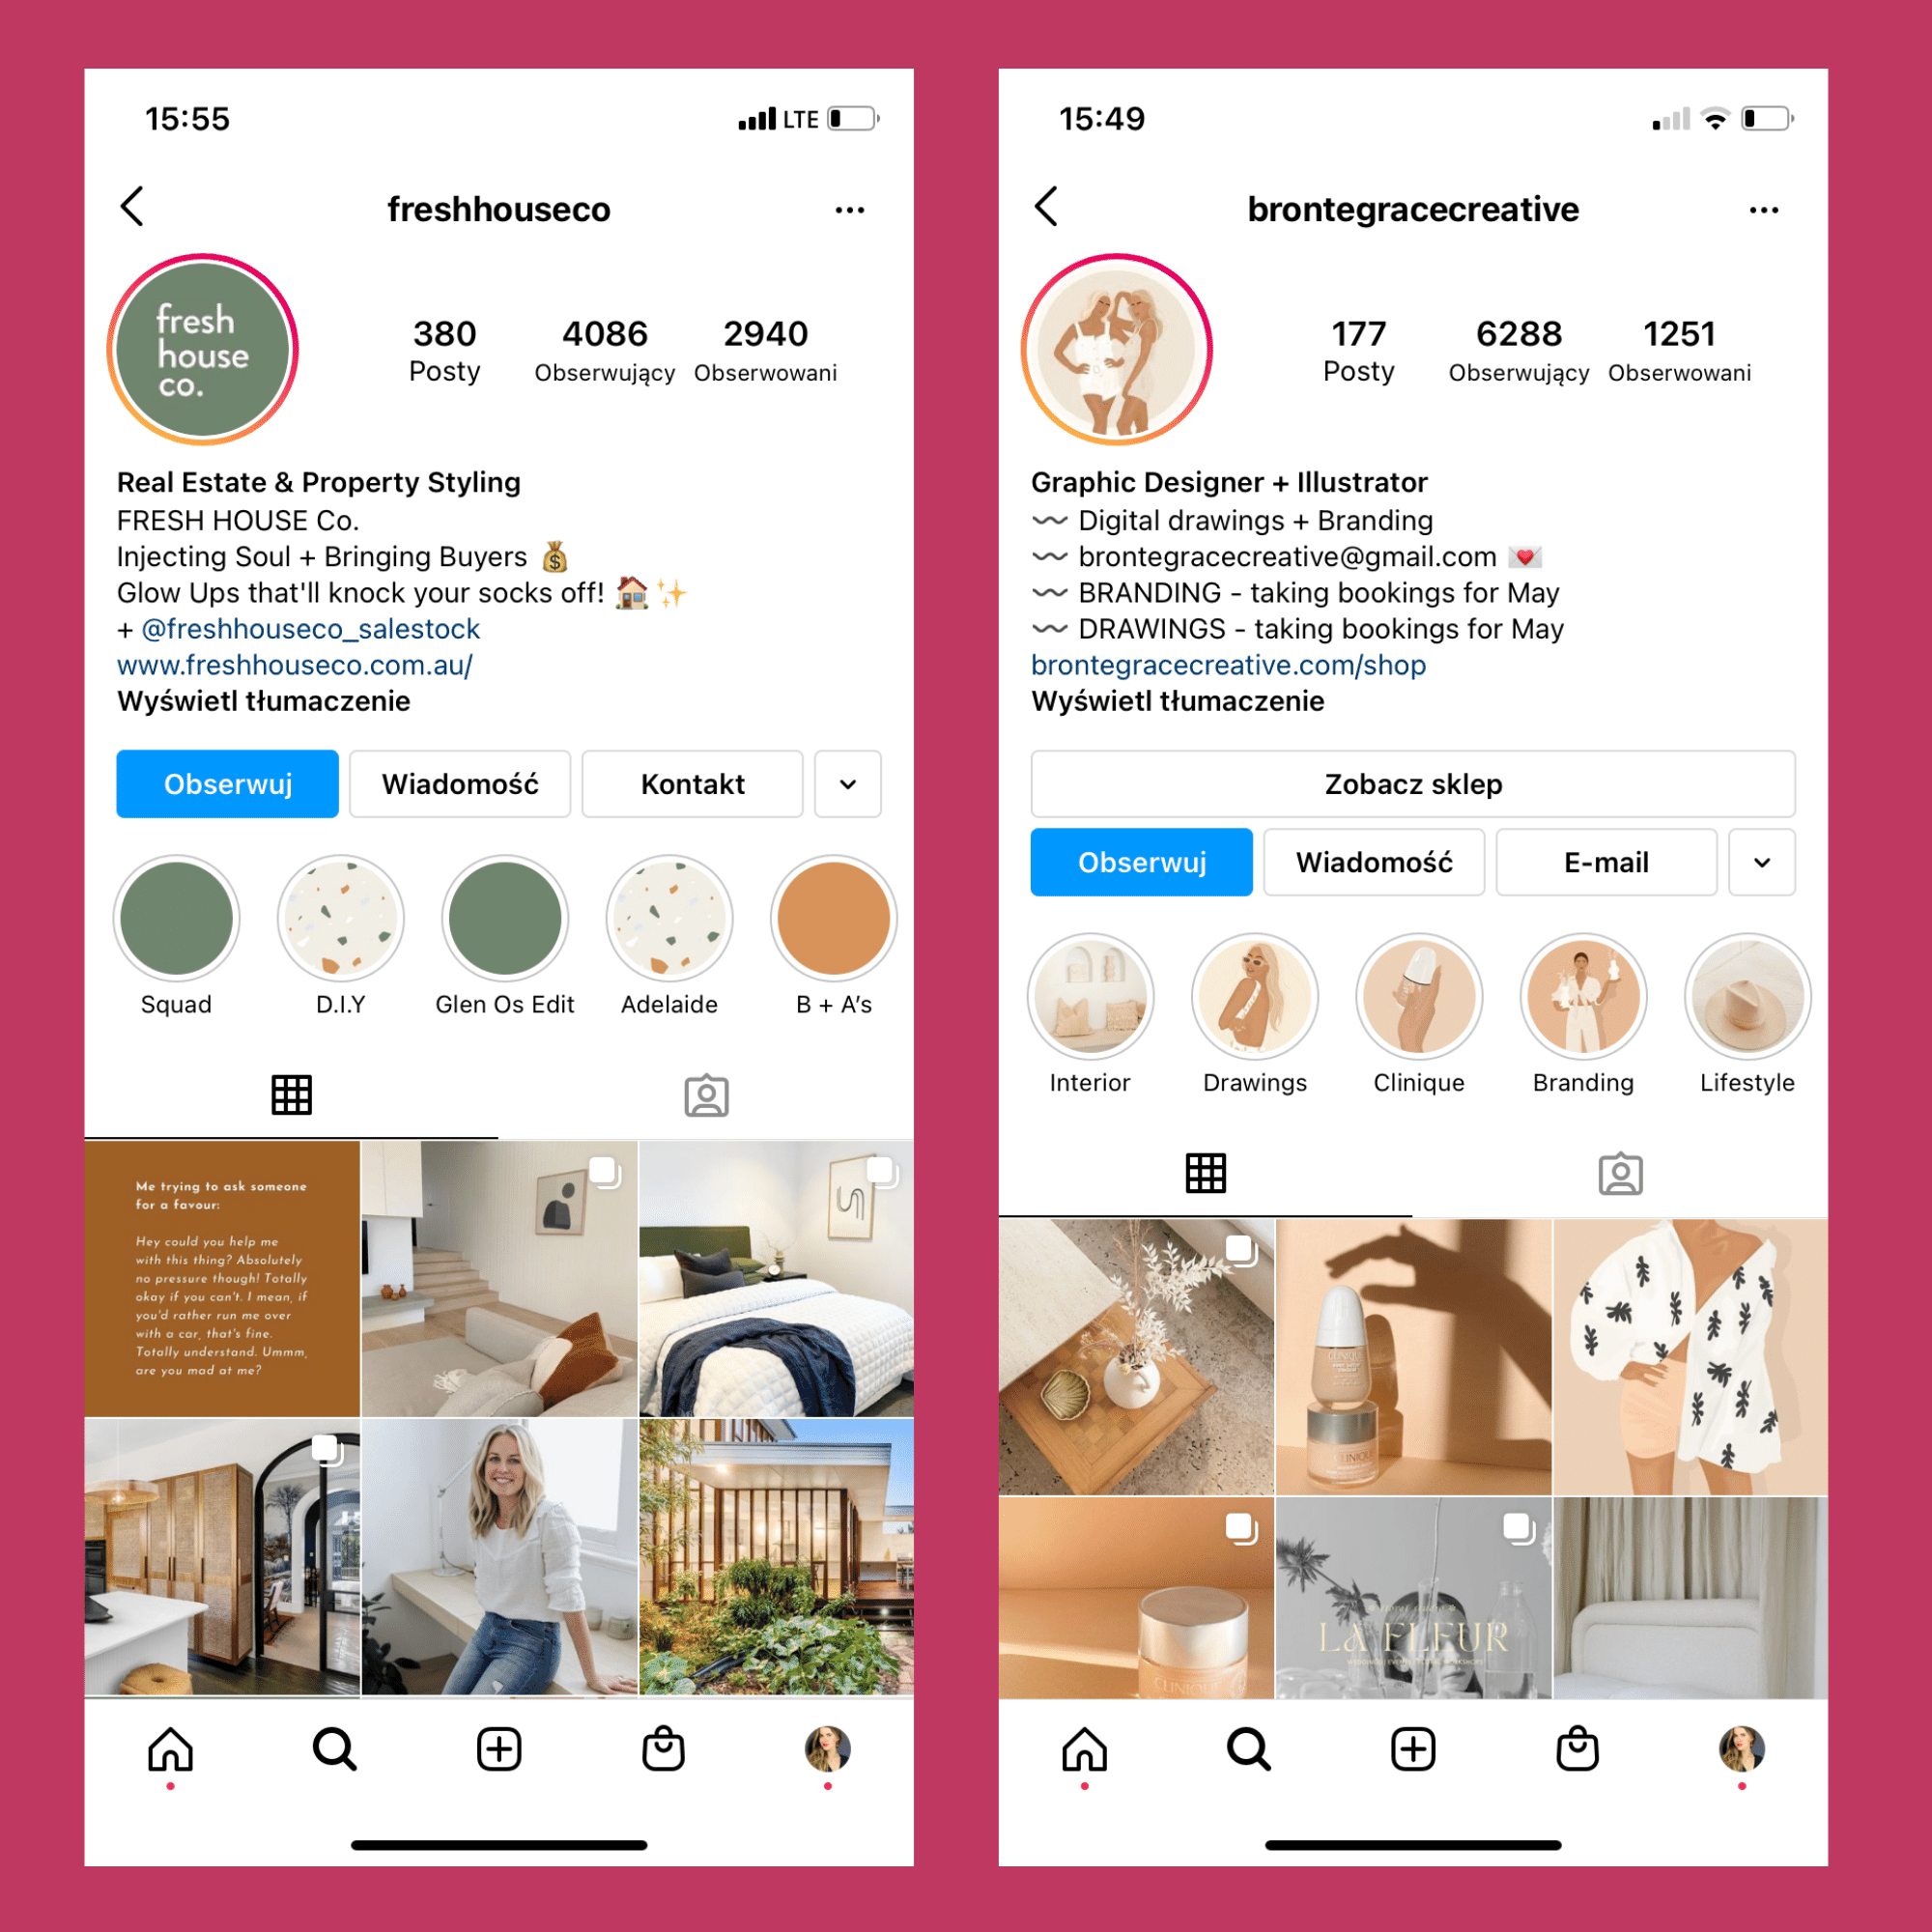 setting up my first account on Instagram